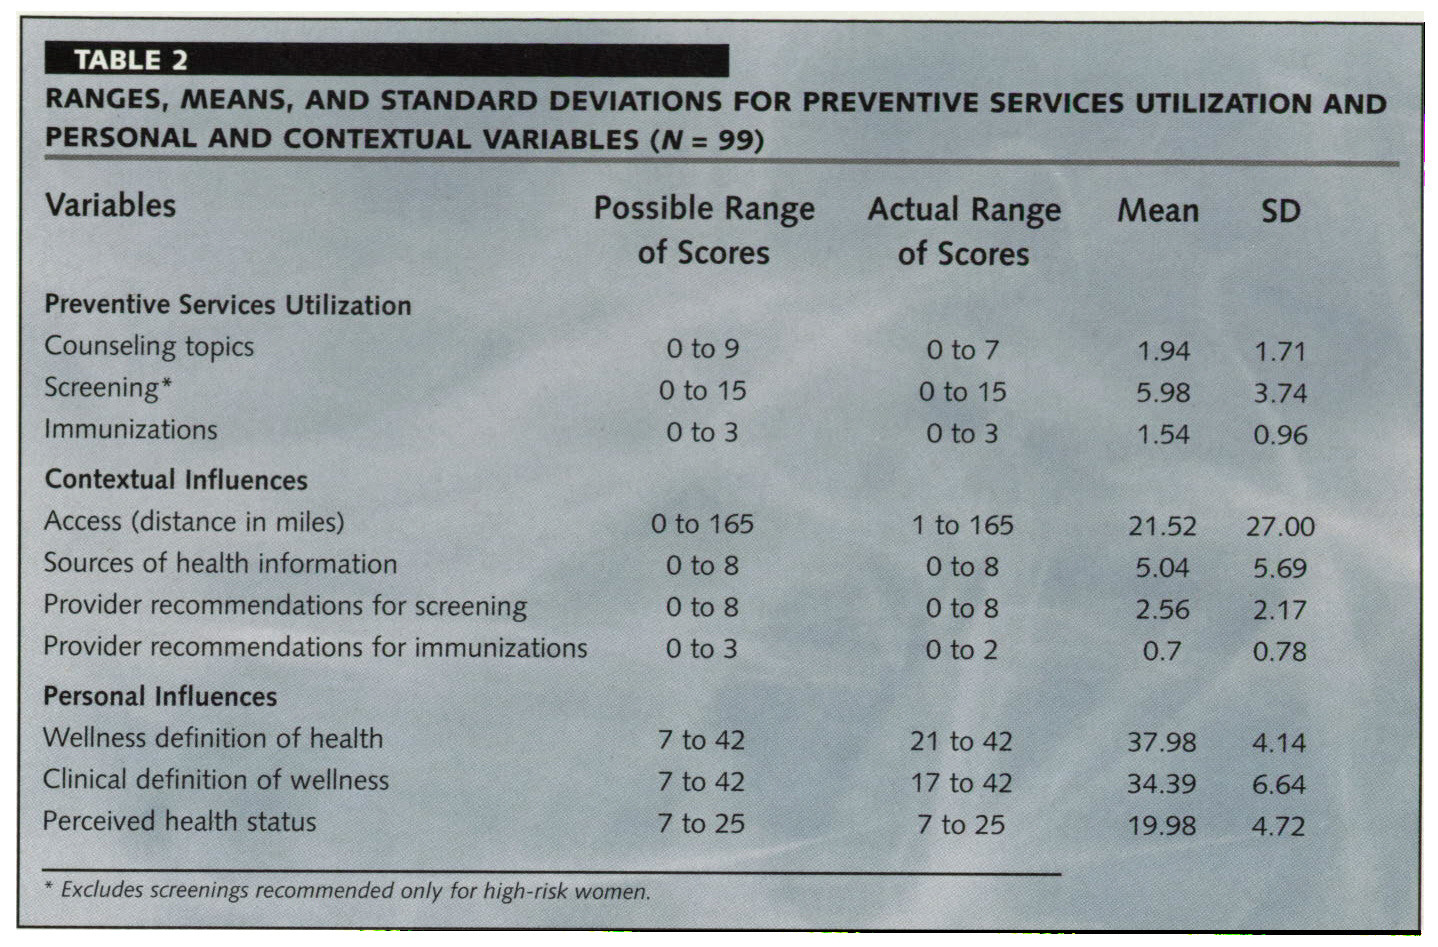 TABLE 2RANGES, MEANS, AND STANDARD DEVIATIONS FOR PREVENTIVE SERVICES UTILIZATION AND PERSONAL AND CONTEXTUAL VARIABLES (N = 99)